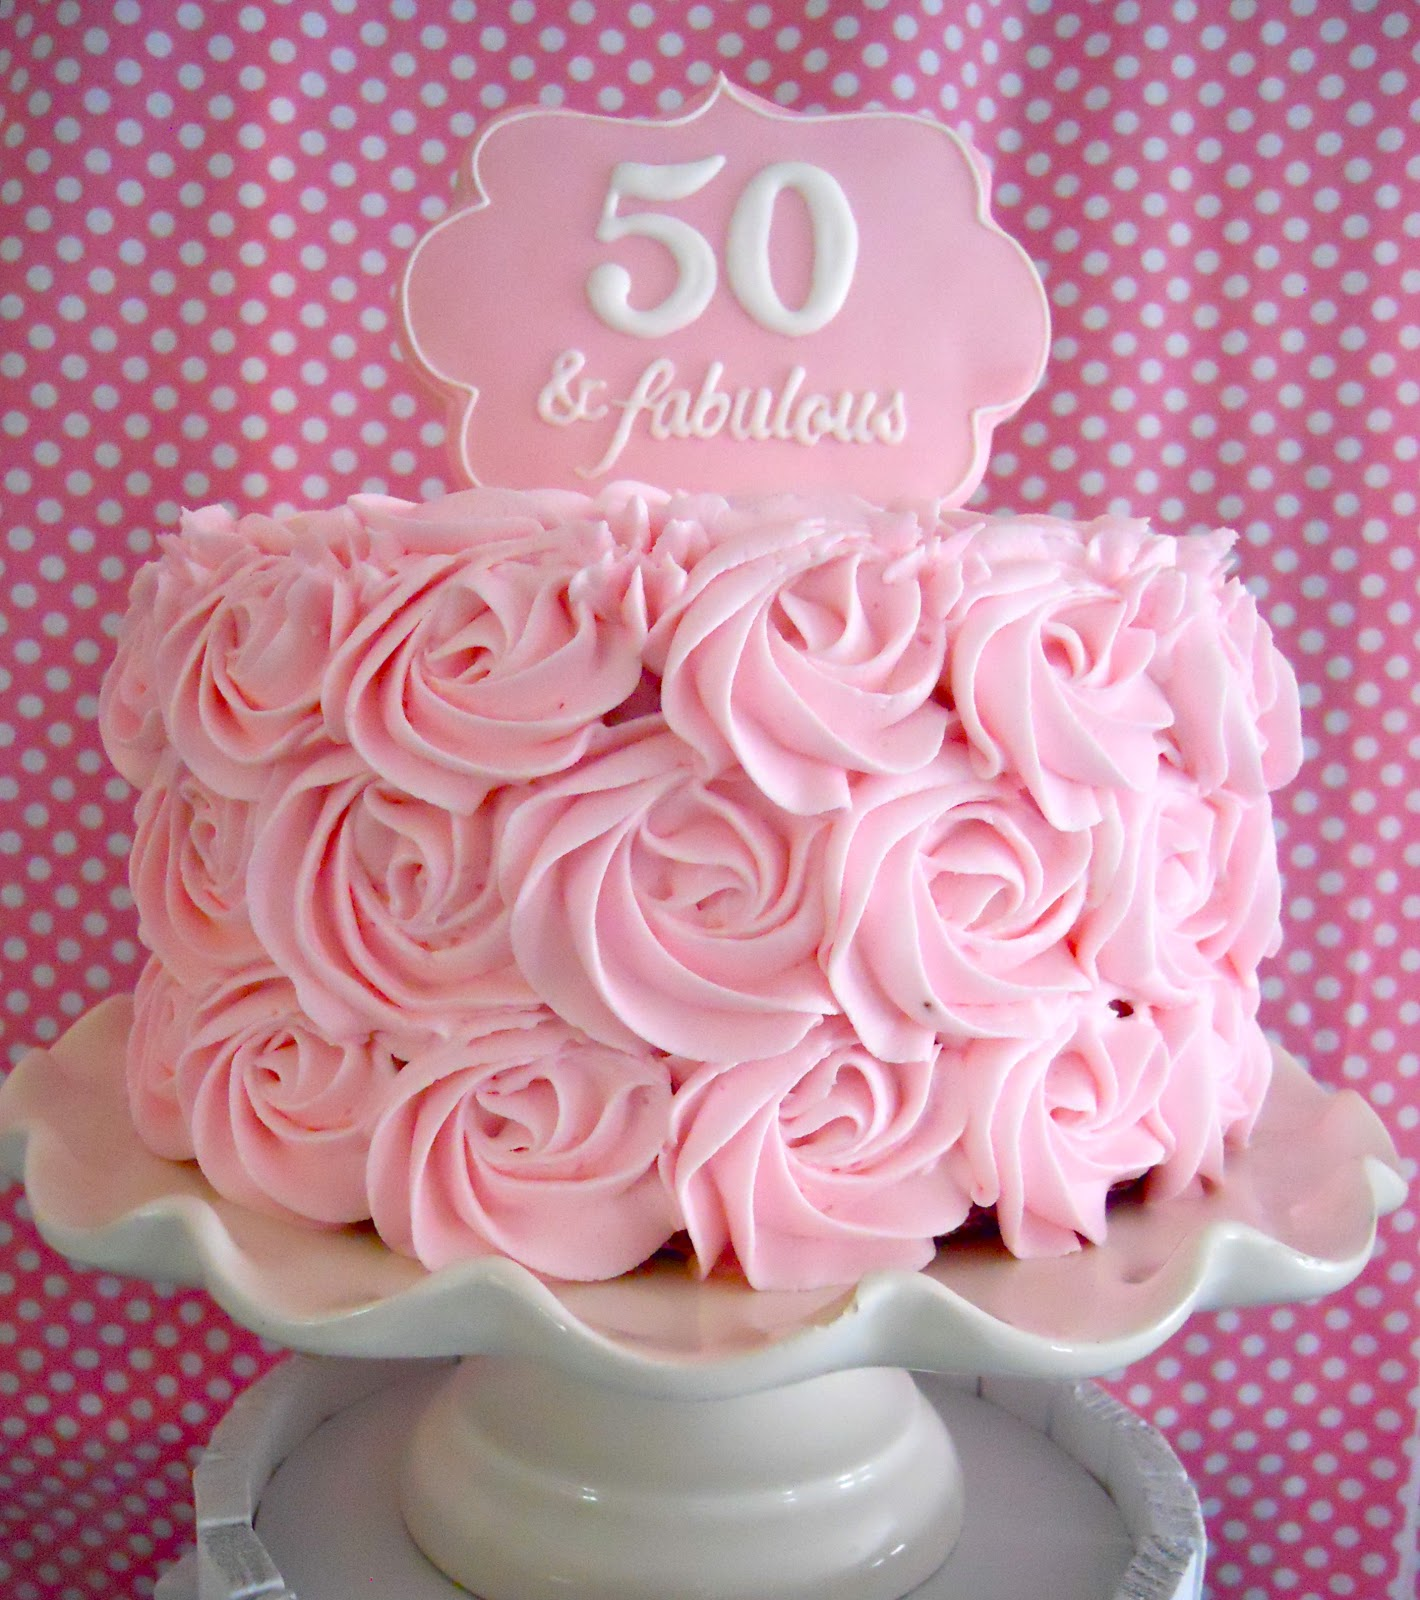 50 Abd Fabulou: Fifty And Fabulous Quotes. QuotesGram